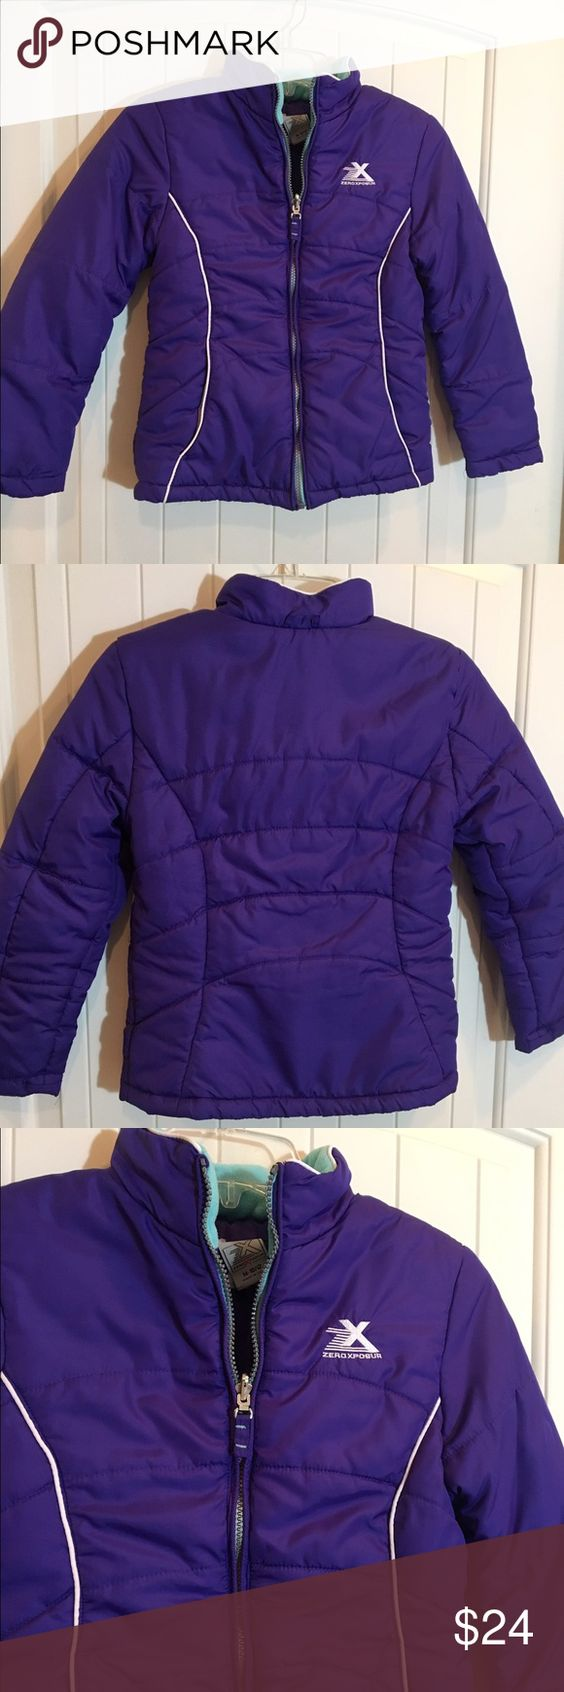 Zero Xposure kids coat girls 10-12 Purple coat with turquoise fleece collar. Girls 10-12. Great condition😊 ZeroXposur Jackets & Coats Puffers